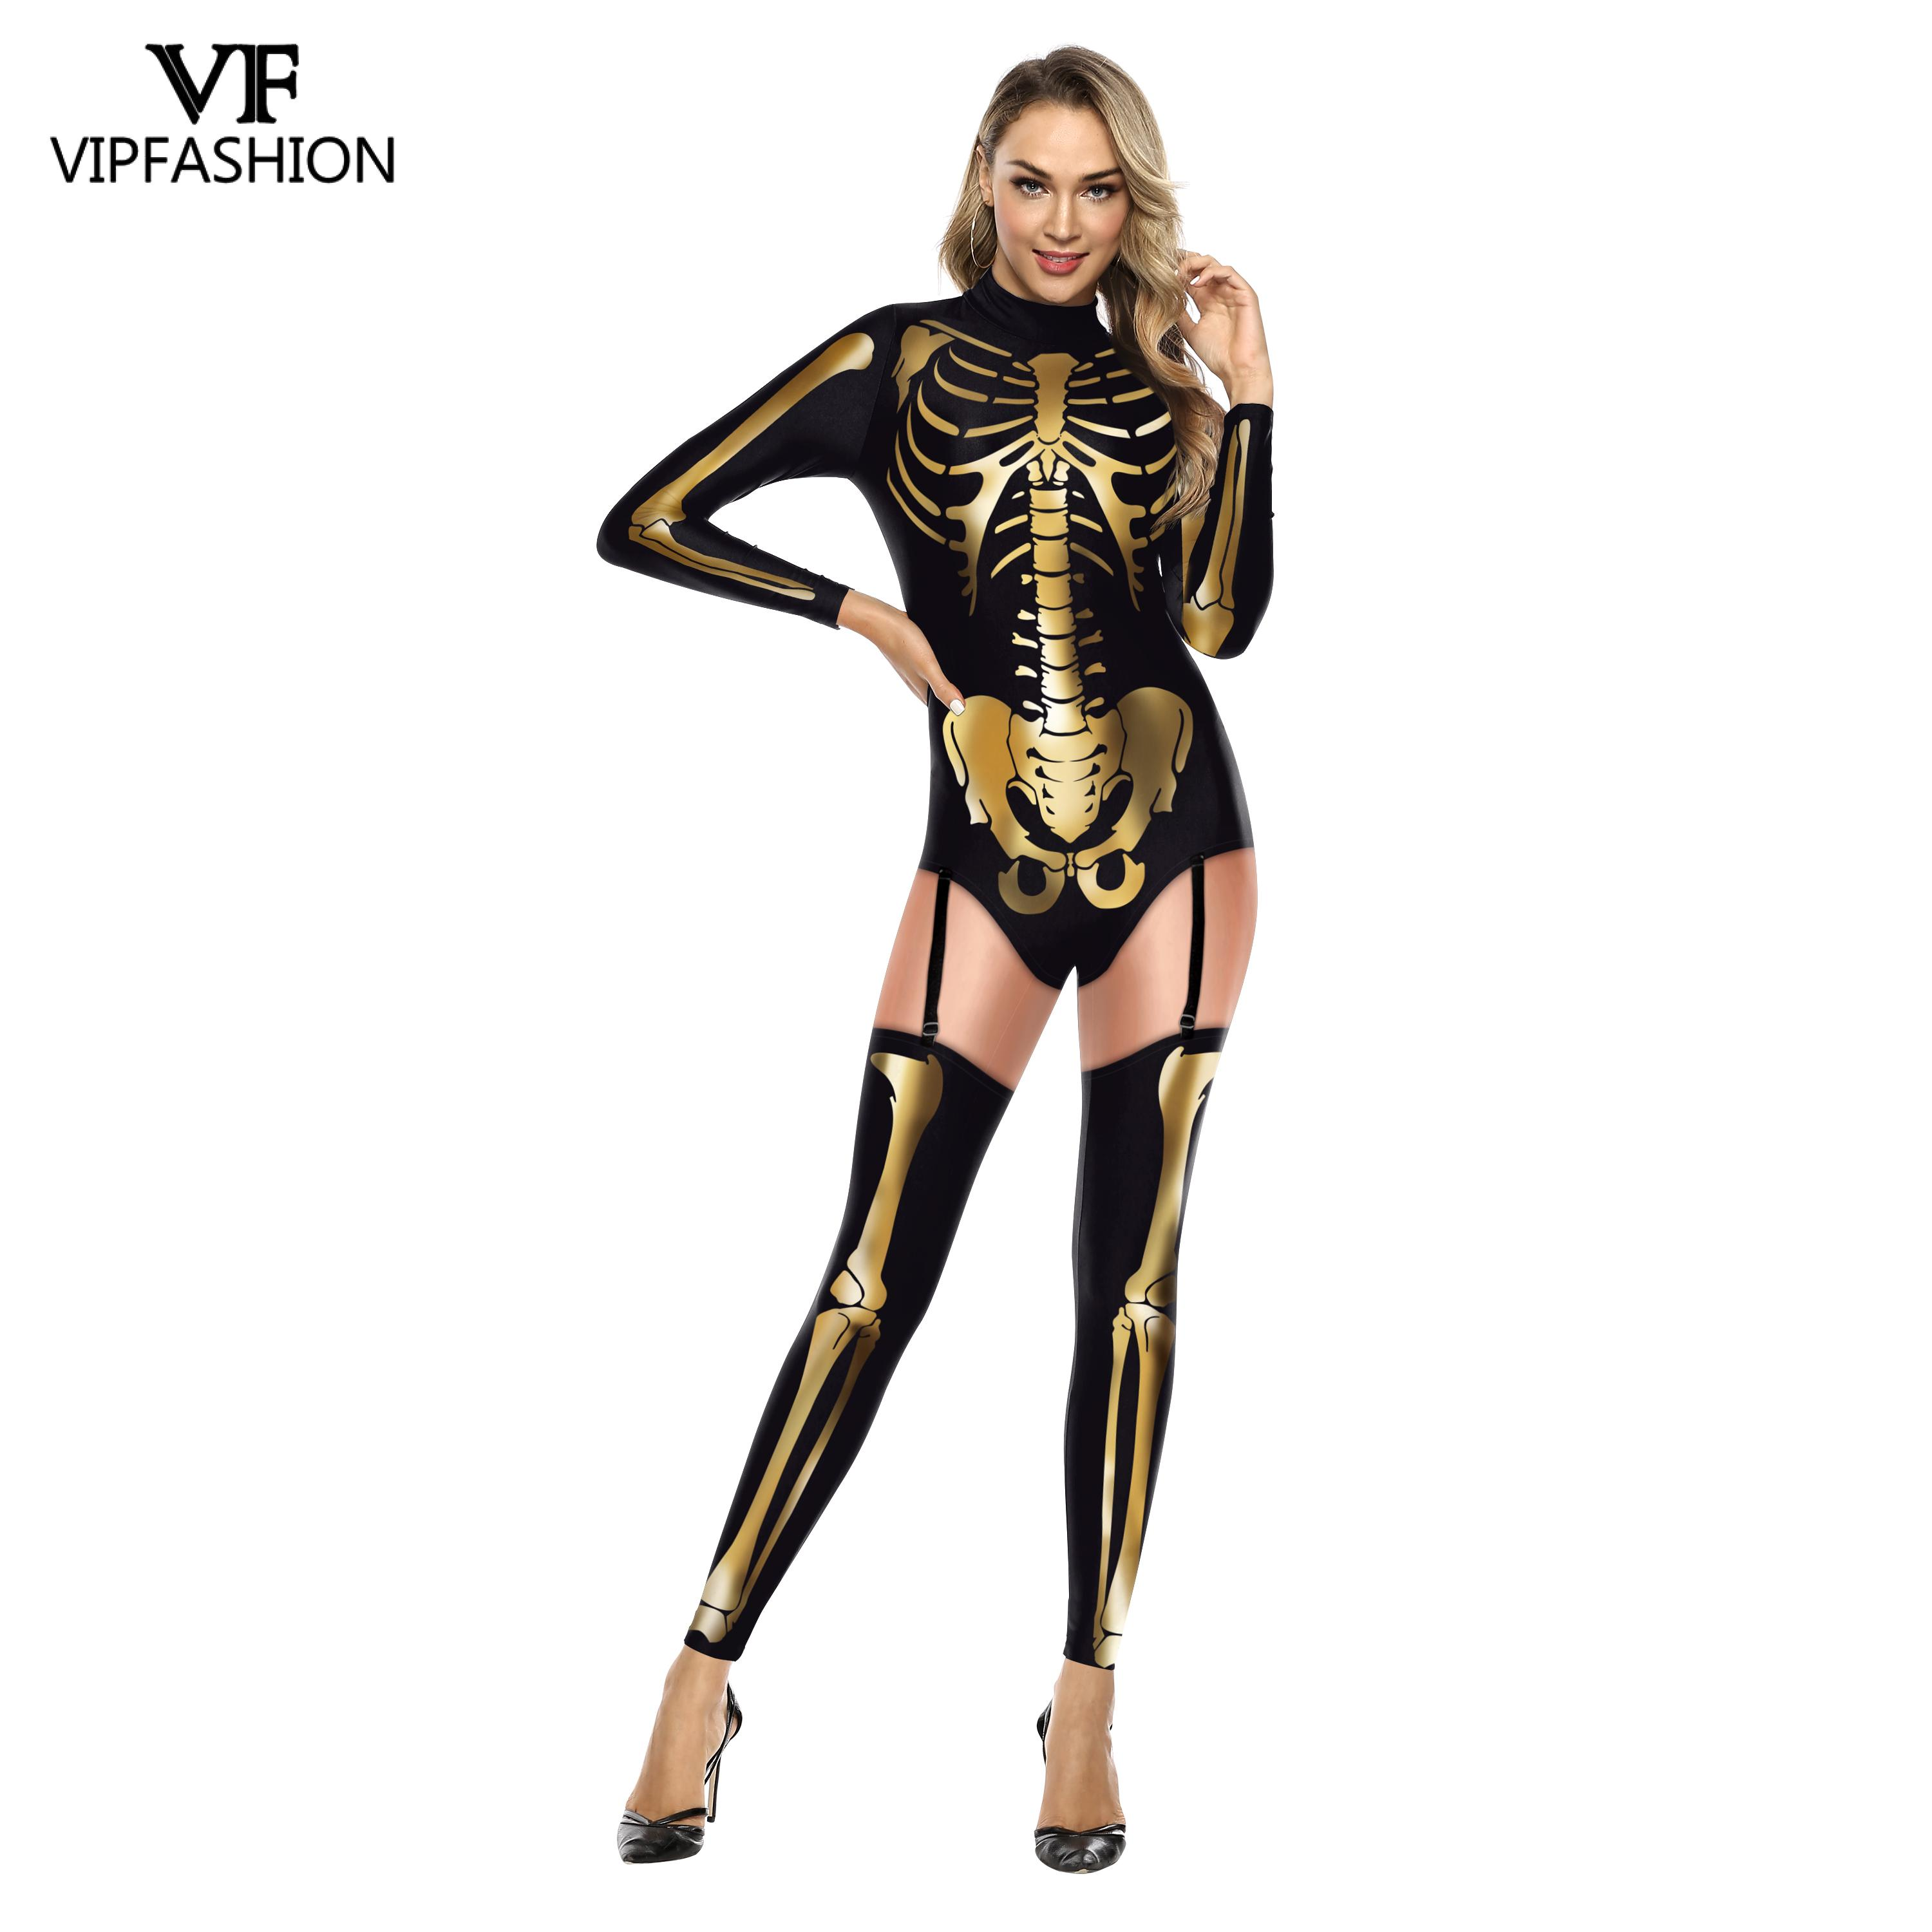 VIP FASHION New Halloween Cosplay Costume Women 3D Skeleton Skull Printed Jumpsuit Carnival Onesies Outfits Rompers Bodysuits